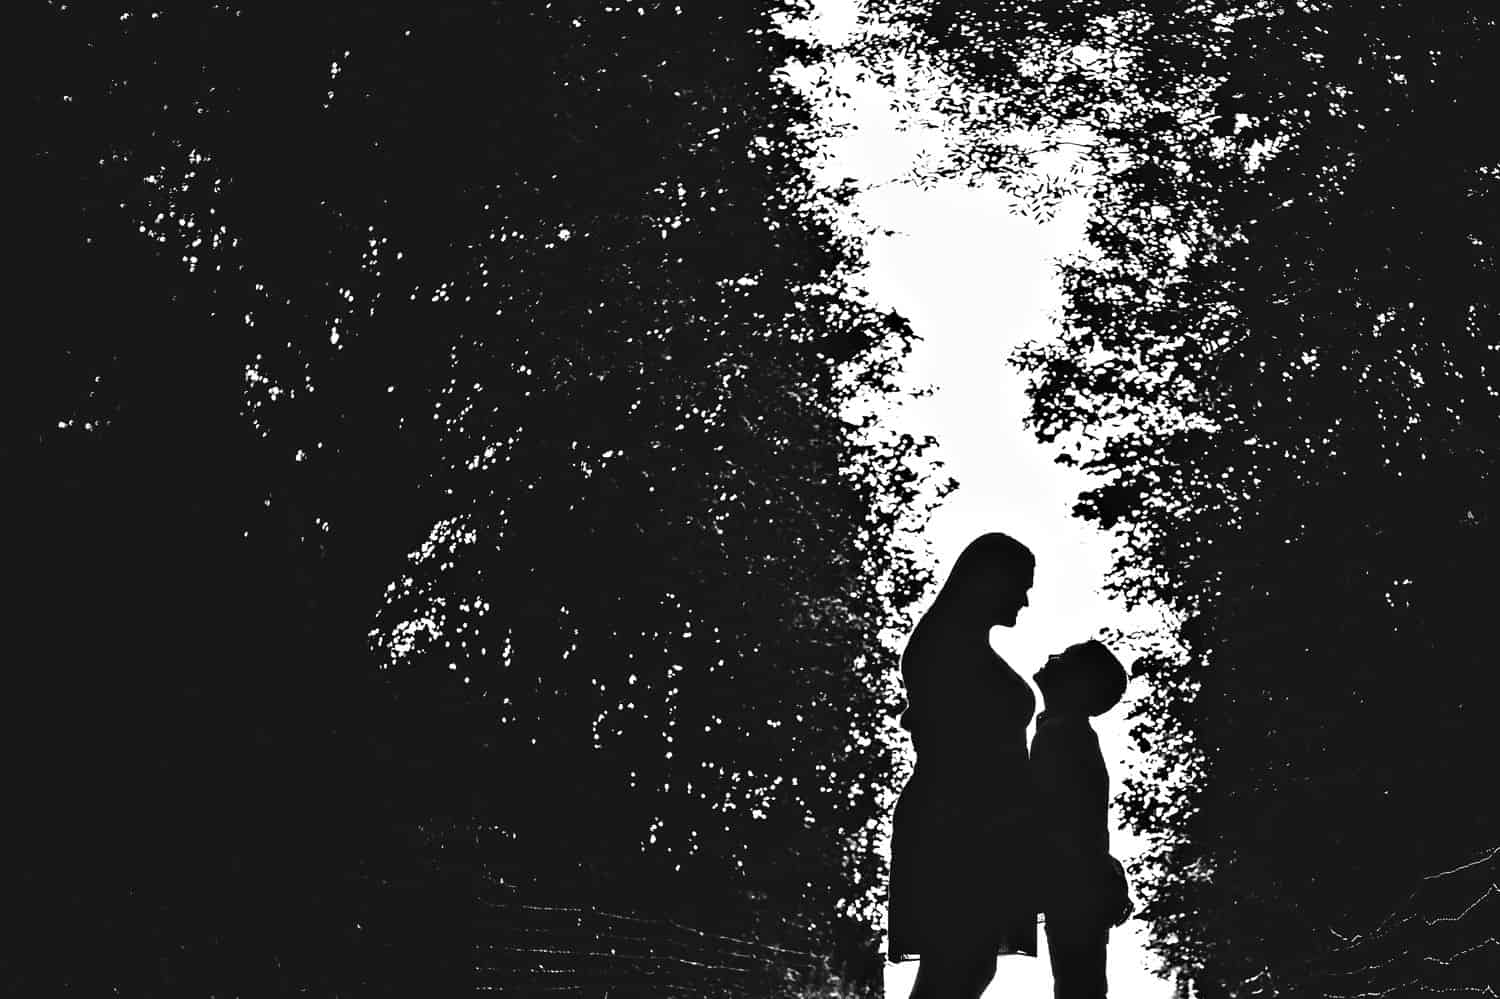 Black and white silhouette of a pregnant mom looking down at her young son. They stand against a white sky, surrounded by large trees.